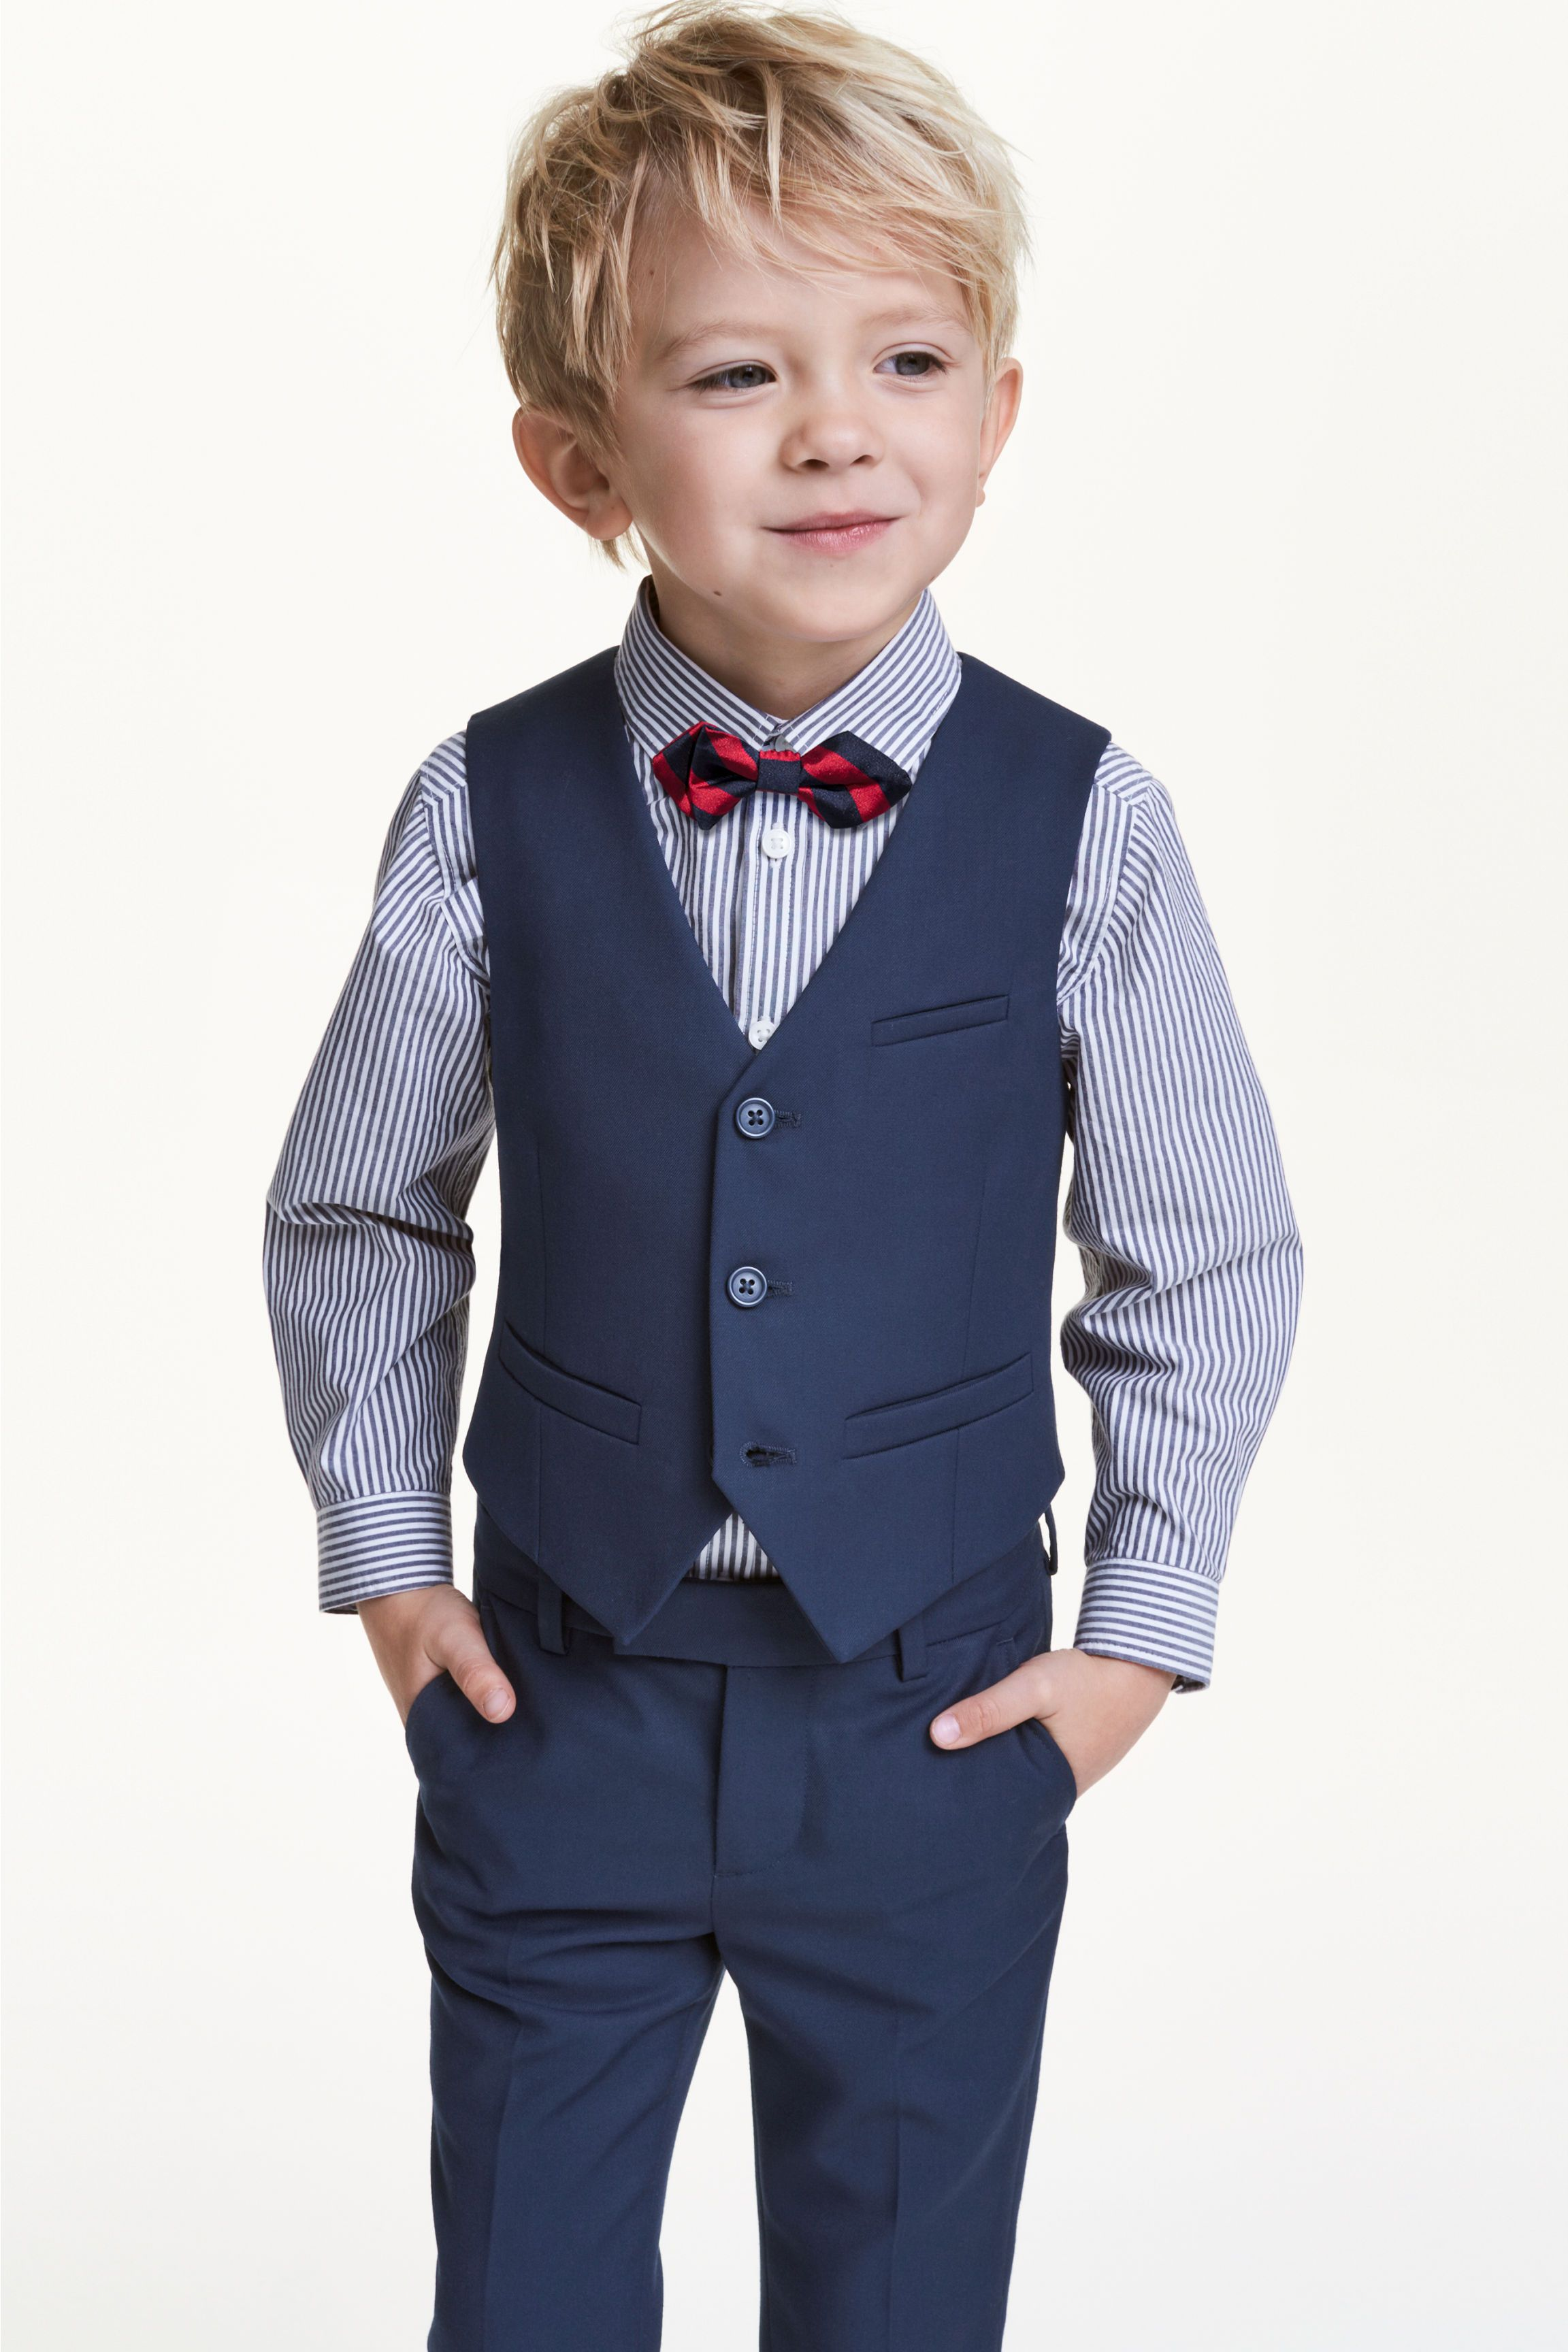 Panciotto pinterest toddler boy style toddler boys and kids outfits